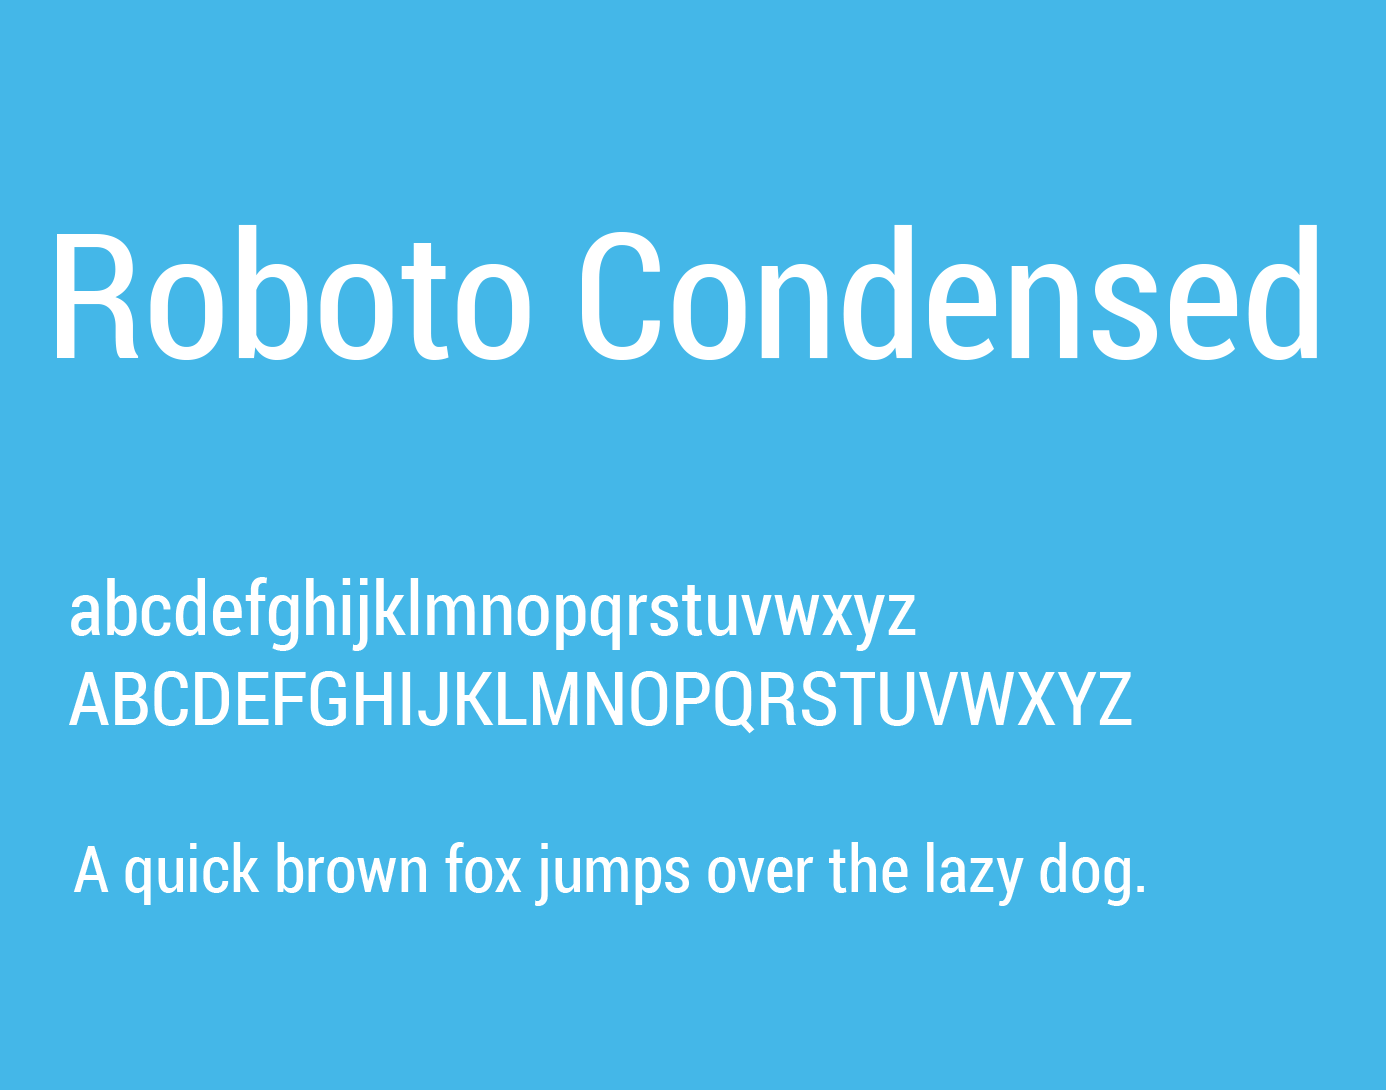 Roboto Condensed Font Free Download